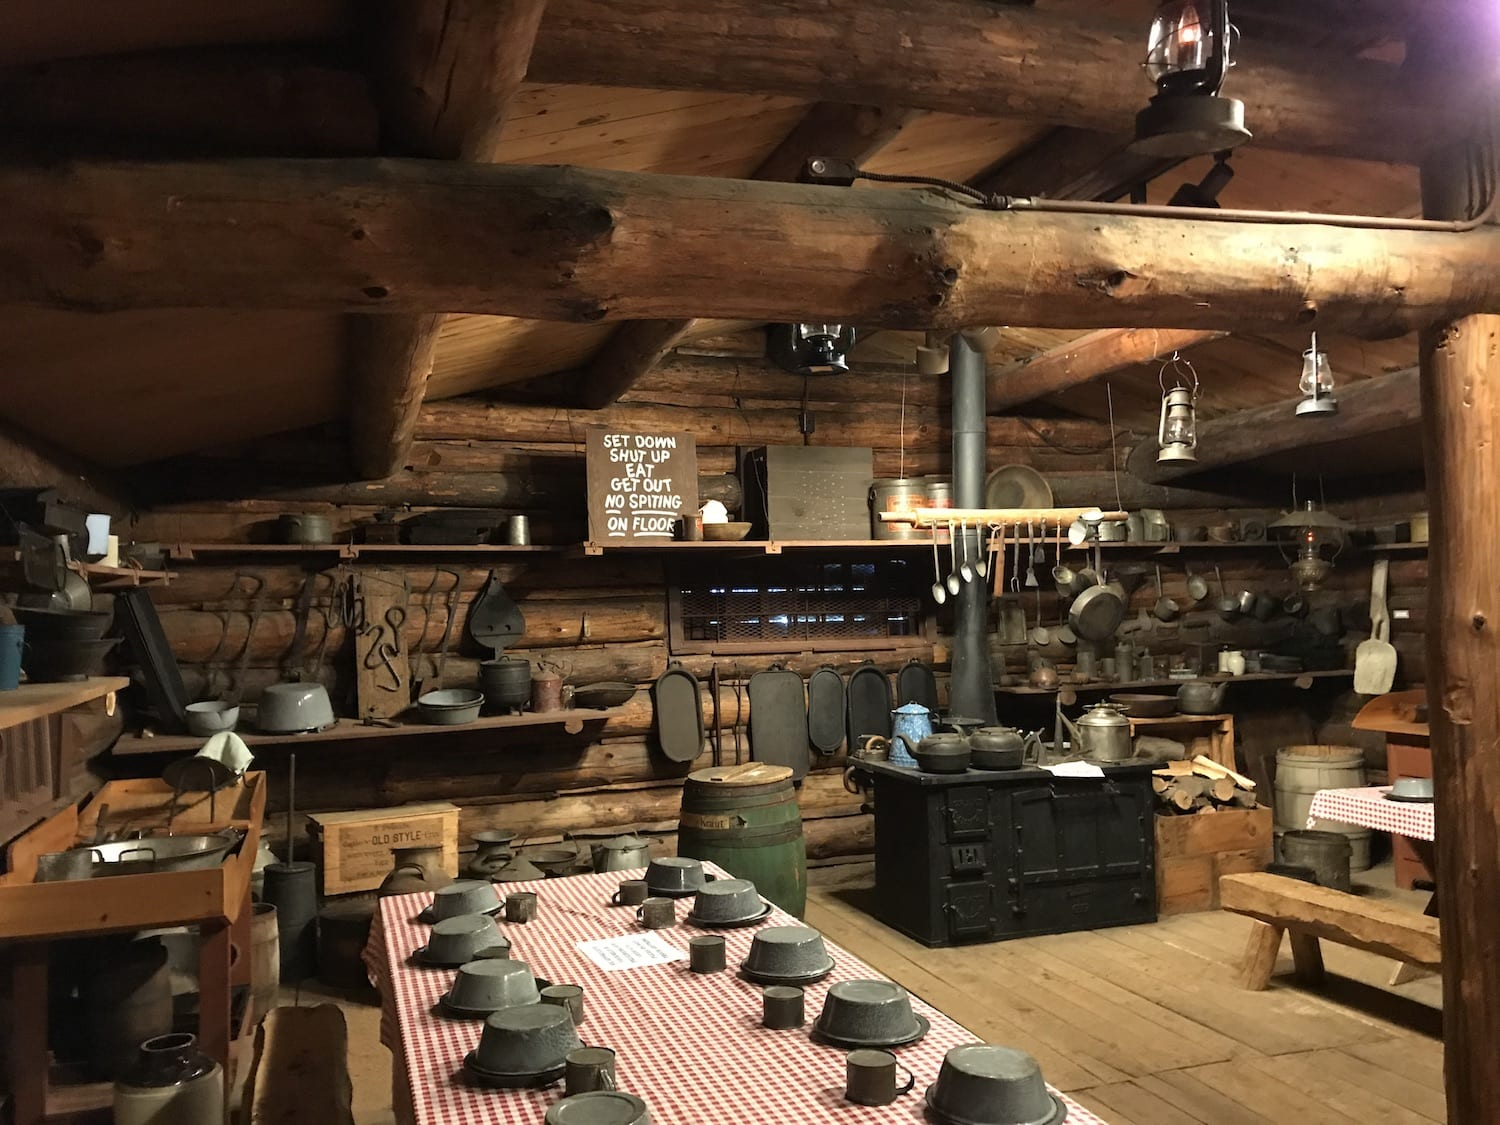 Cook shack at Paul Bunyan Logging Camp Museum